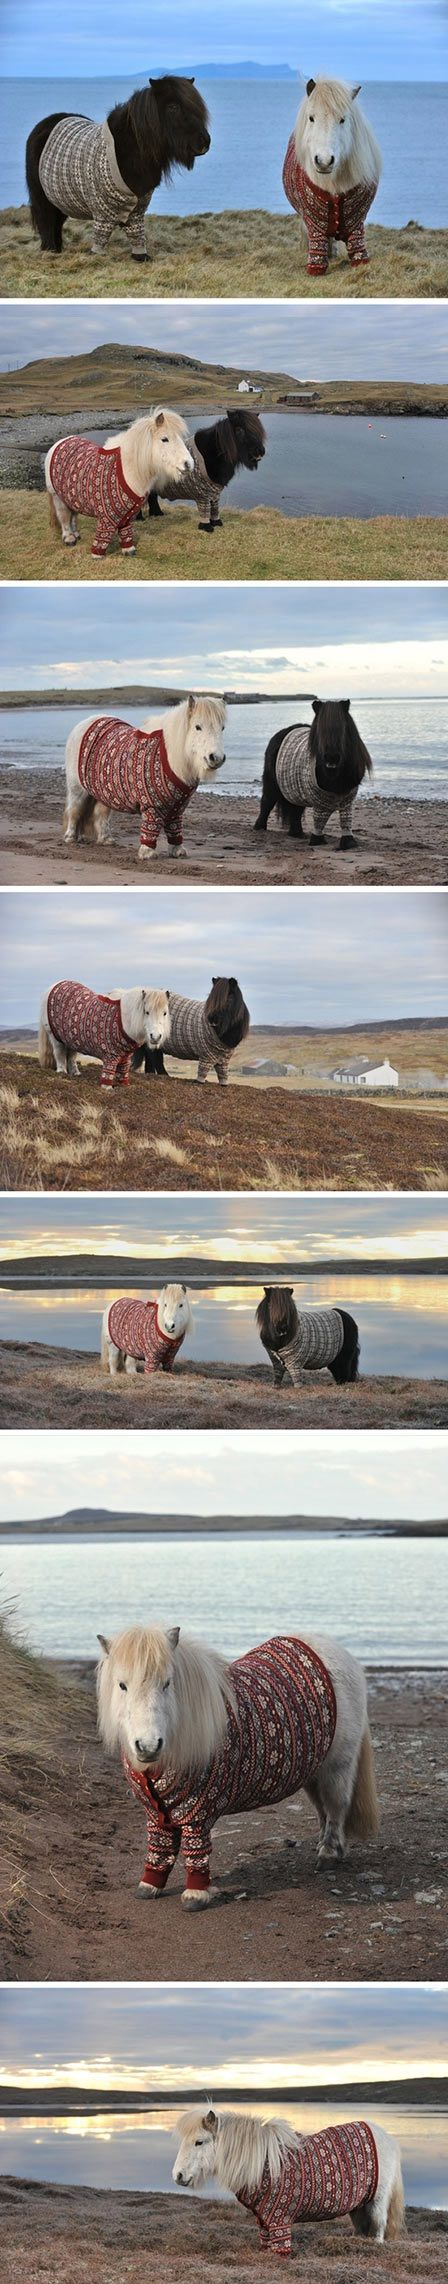 ponies in sweaters!!!! How can you not love that!? And how did they get them in those....